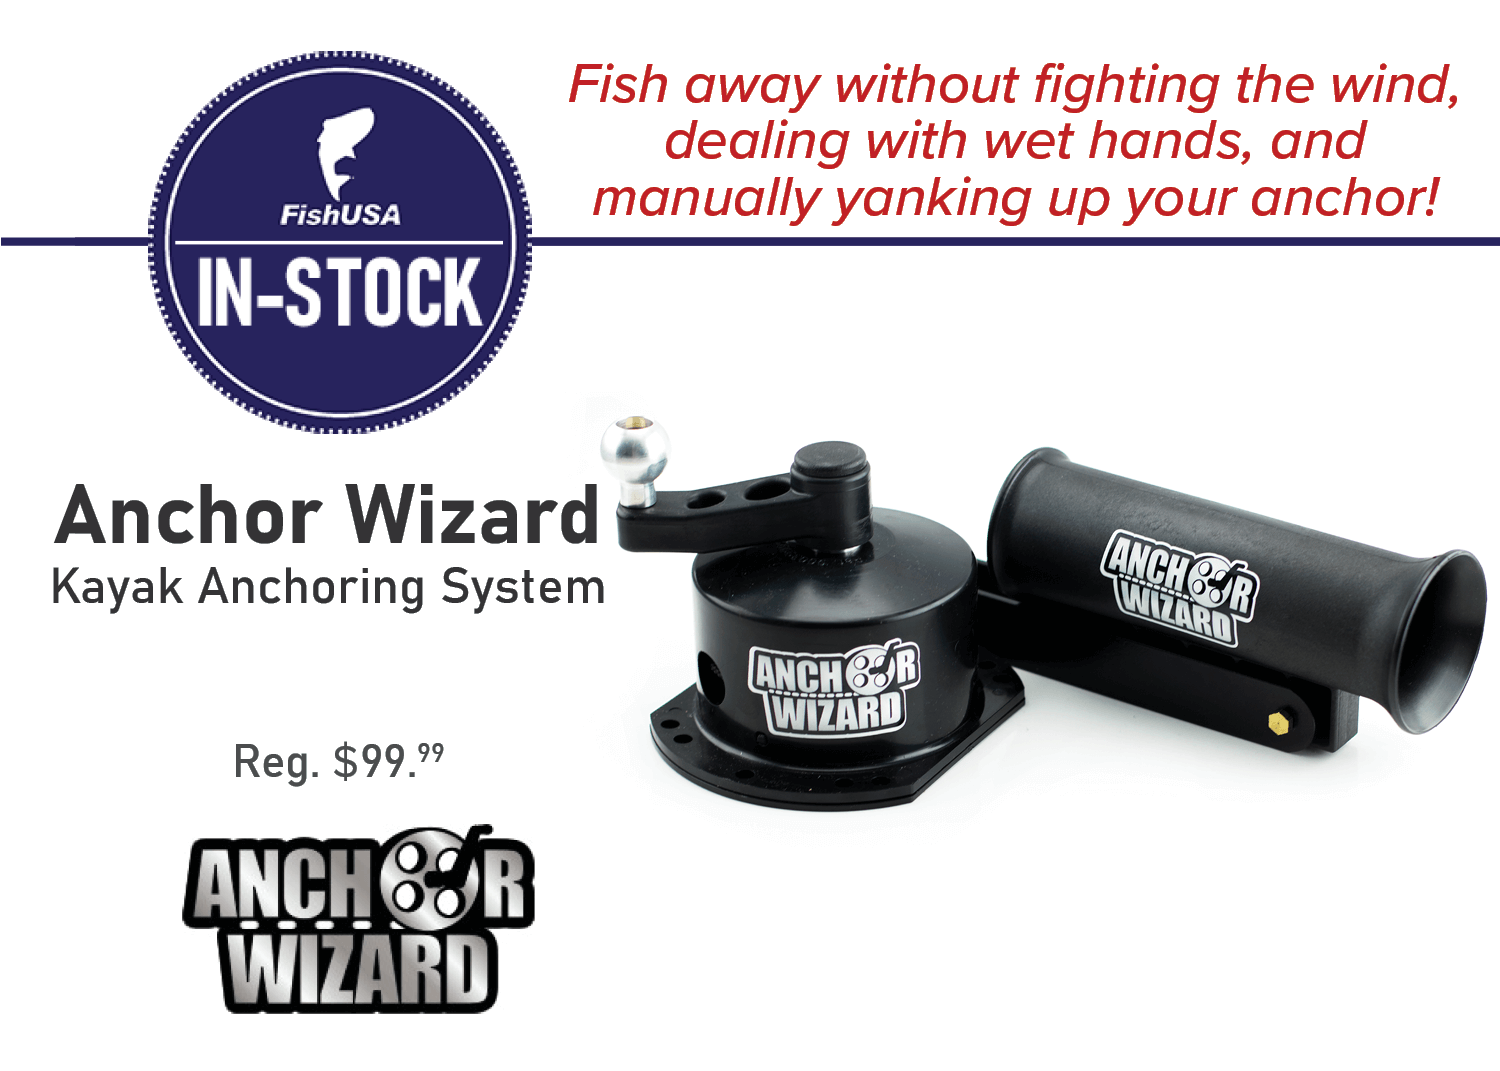 Anchor Wizard Kayak Anchoring System